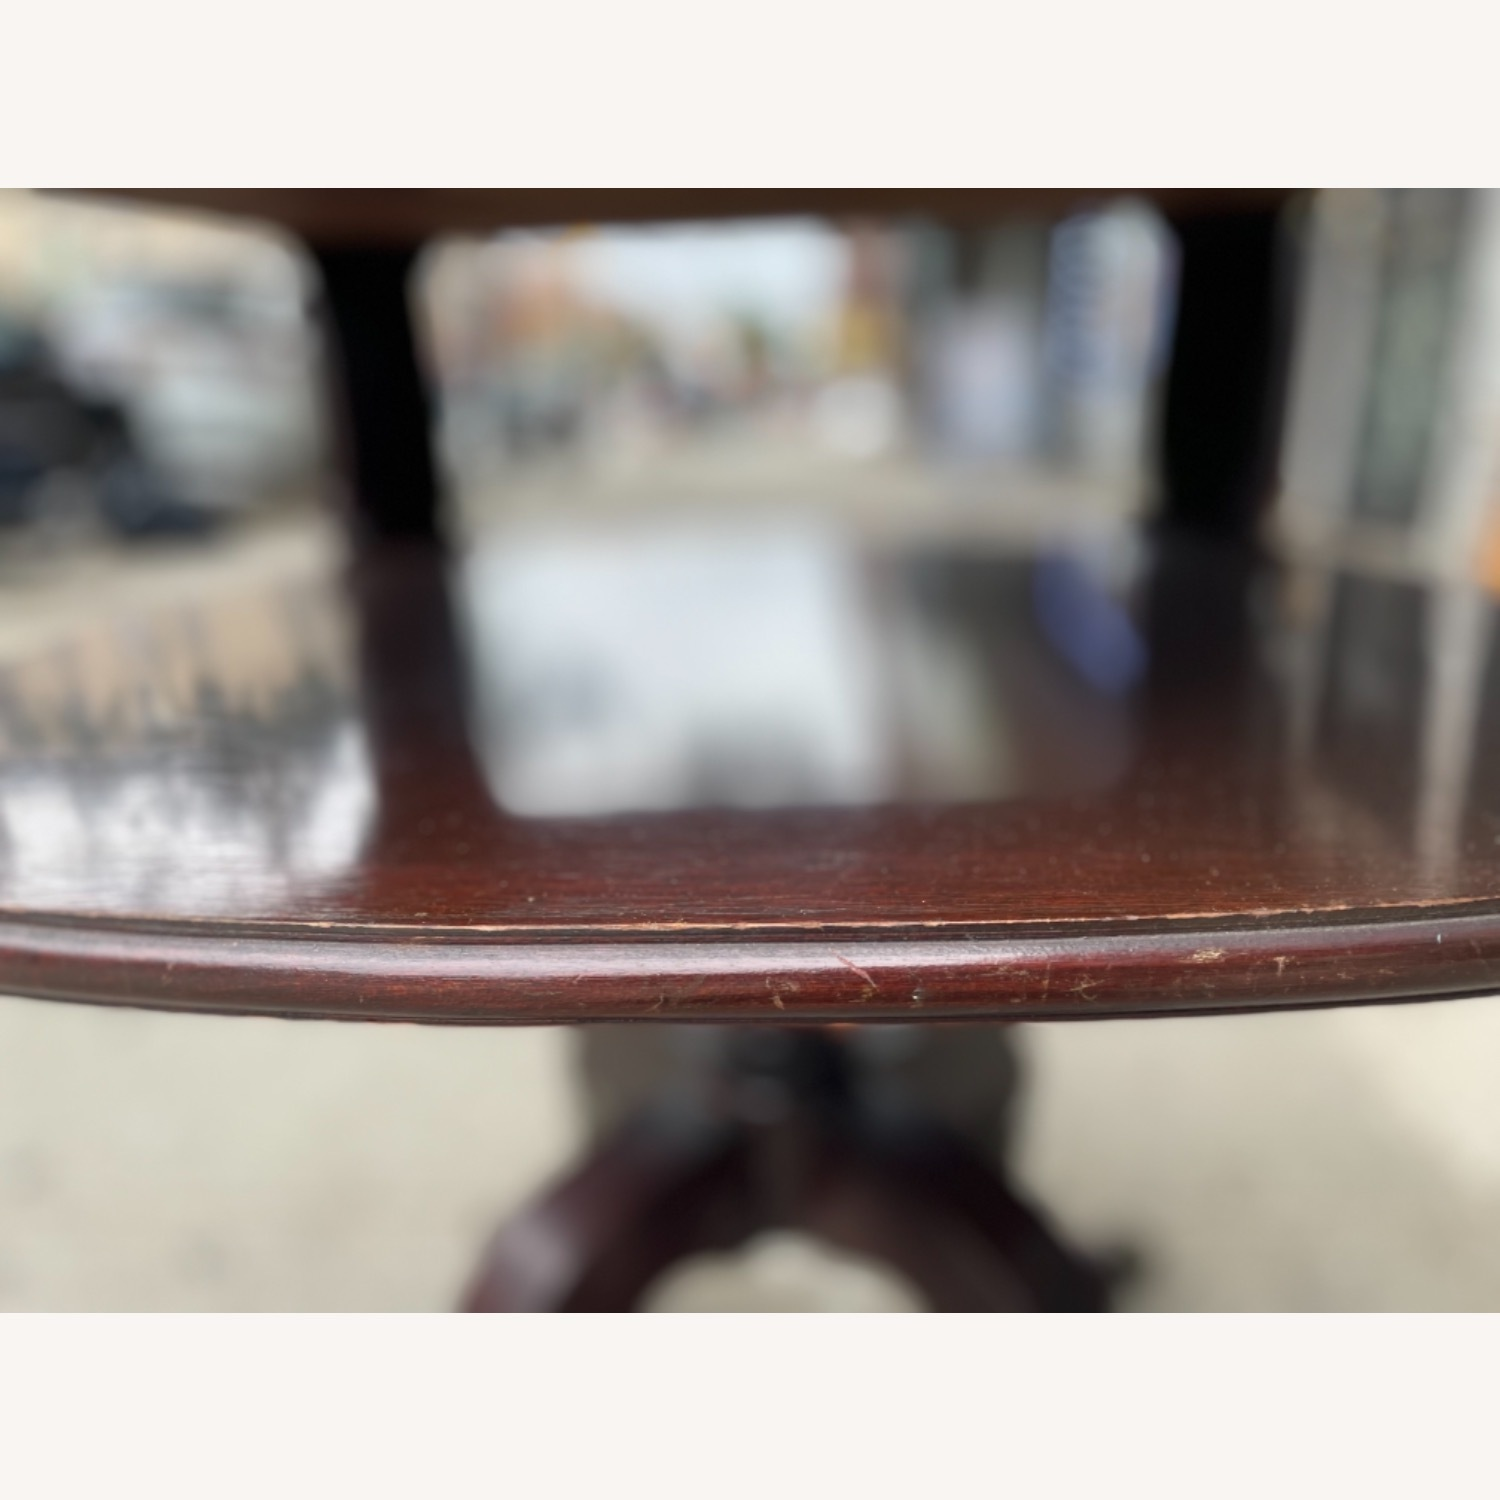 Adams Always 1930s Decorative Leather Top Table - image-27